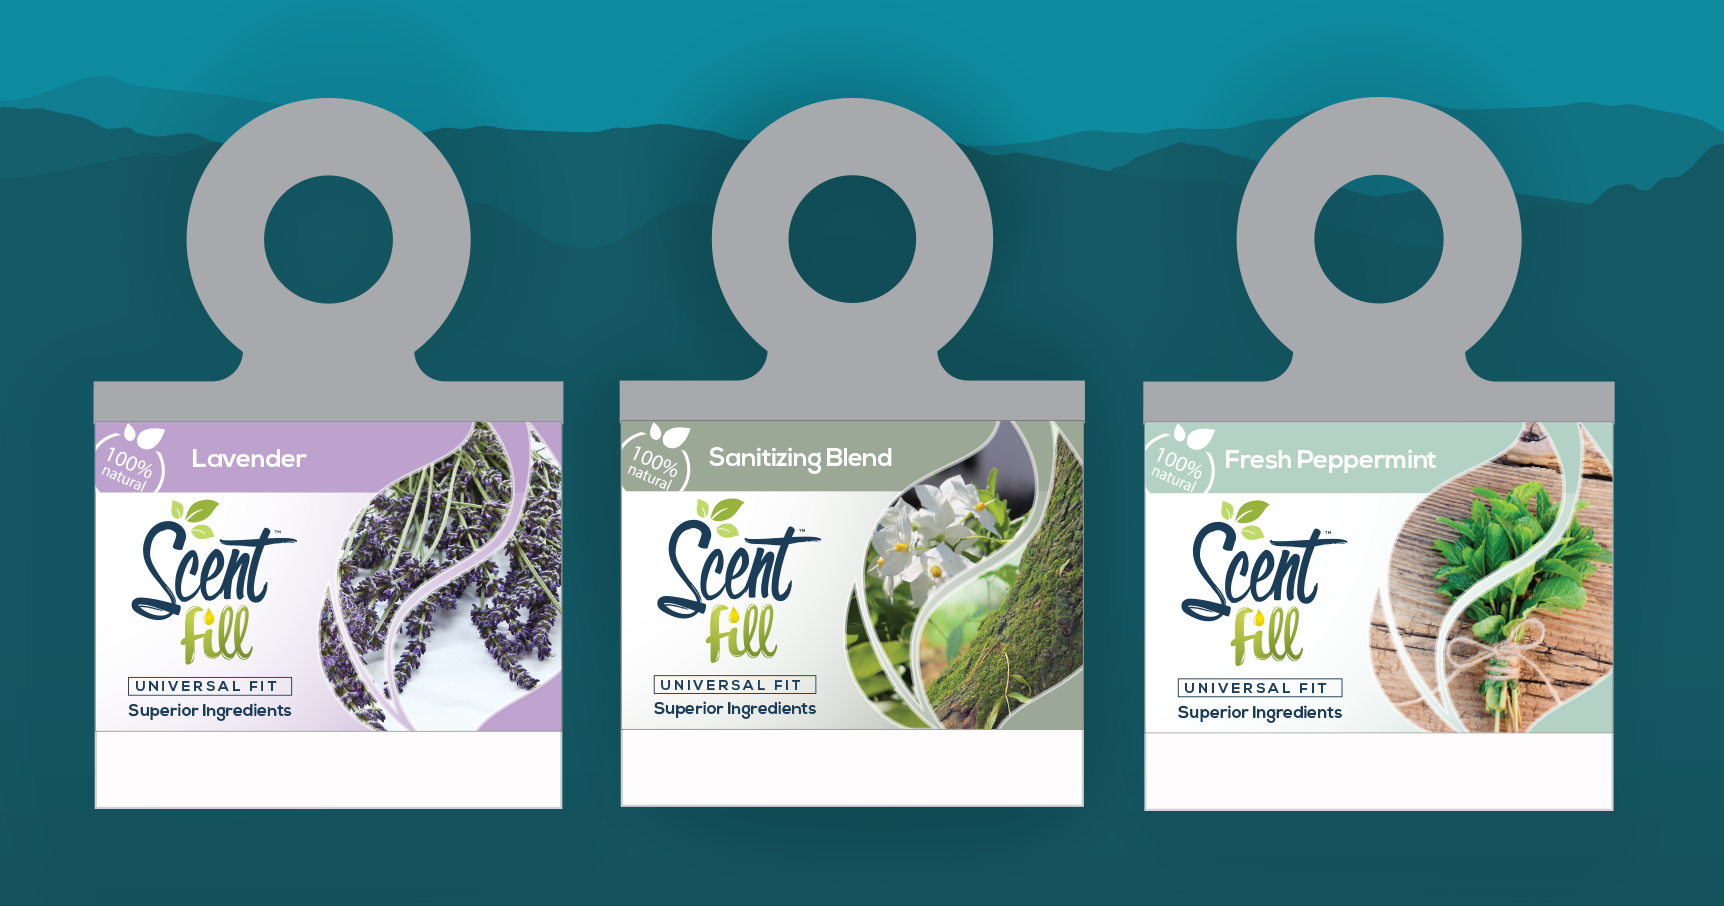 Scent-Fill-Packaging (1).png